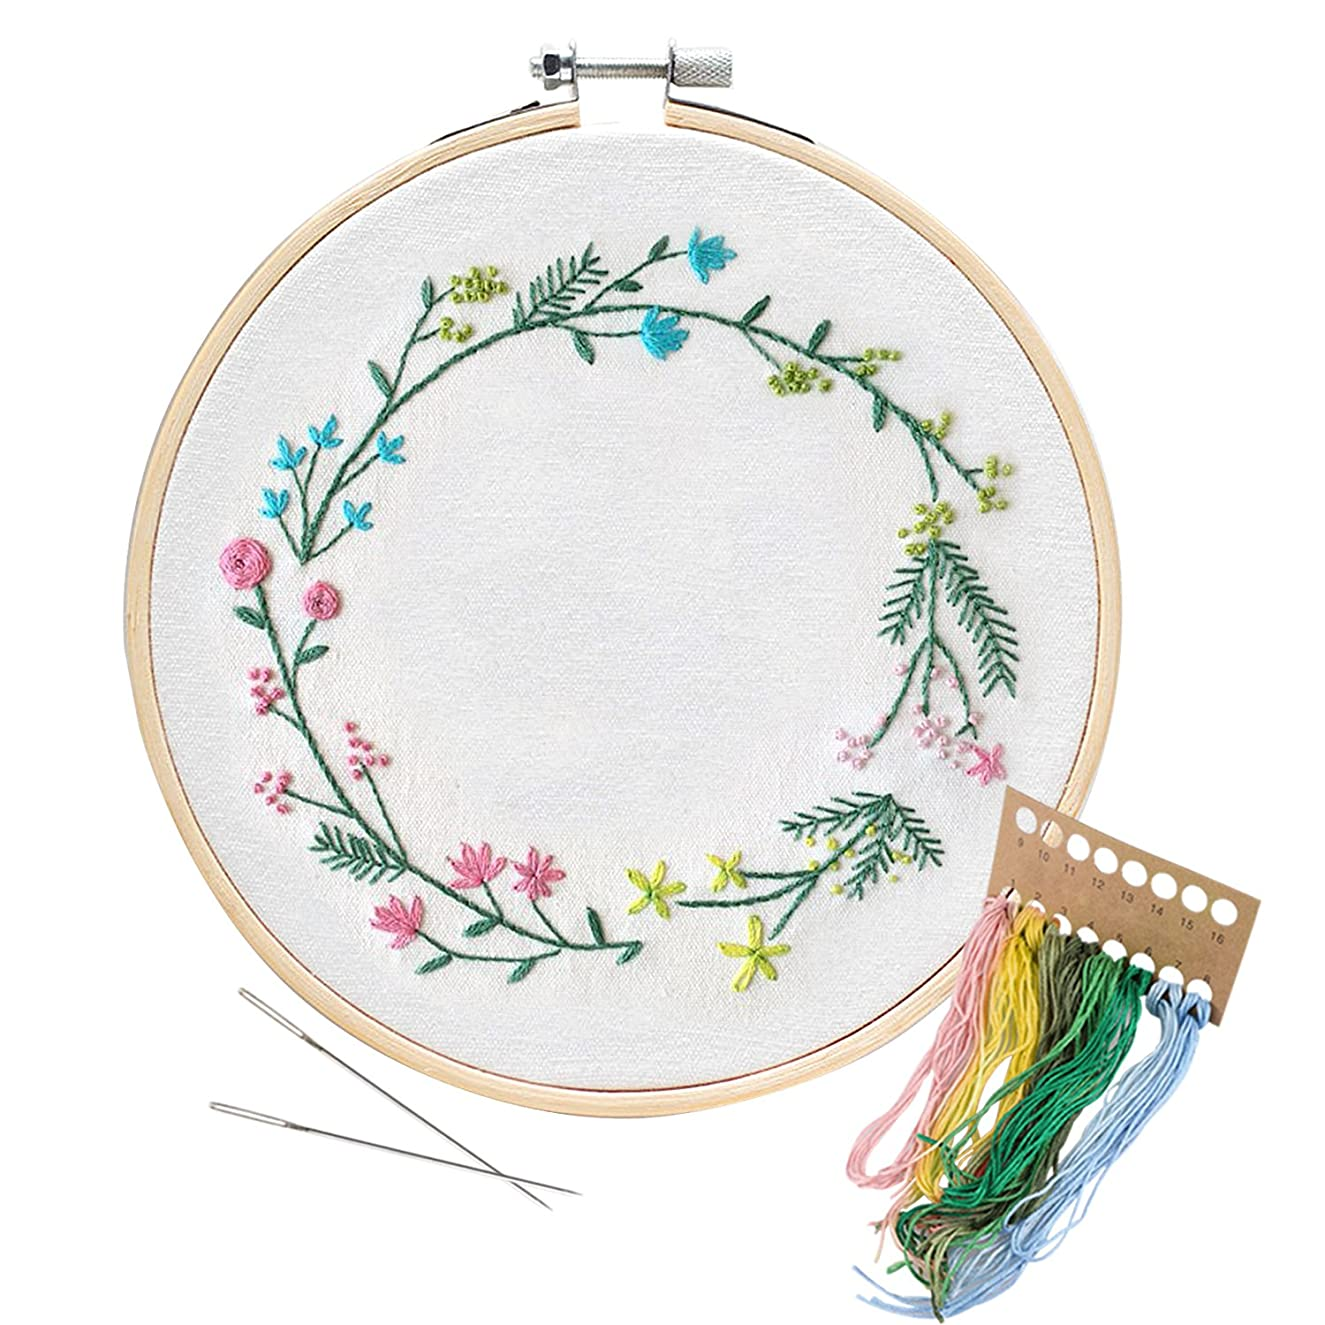 Unime Embroidery Starter Kit with Pattern Full Range Embroidery Kit with Embroidery Cloth, Embroidery Hoop, Color Threads, Needles (garland03)